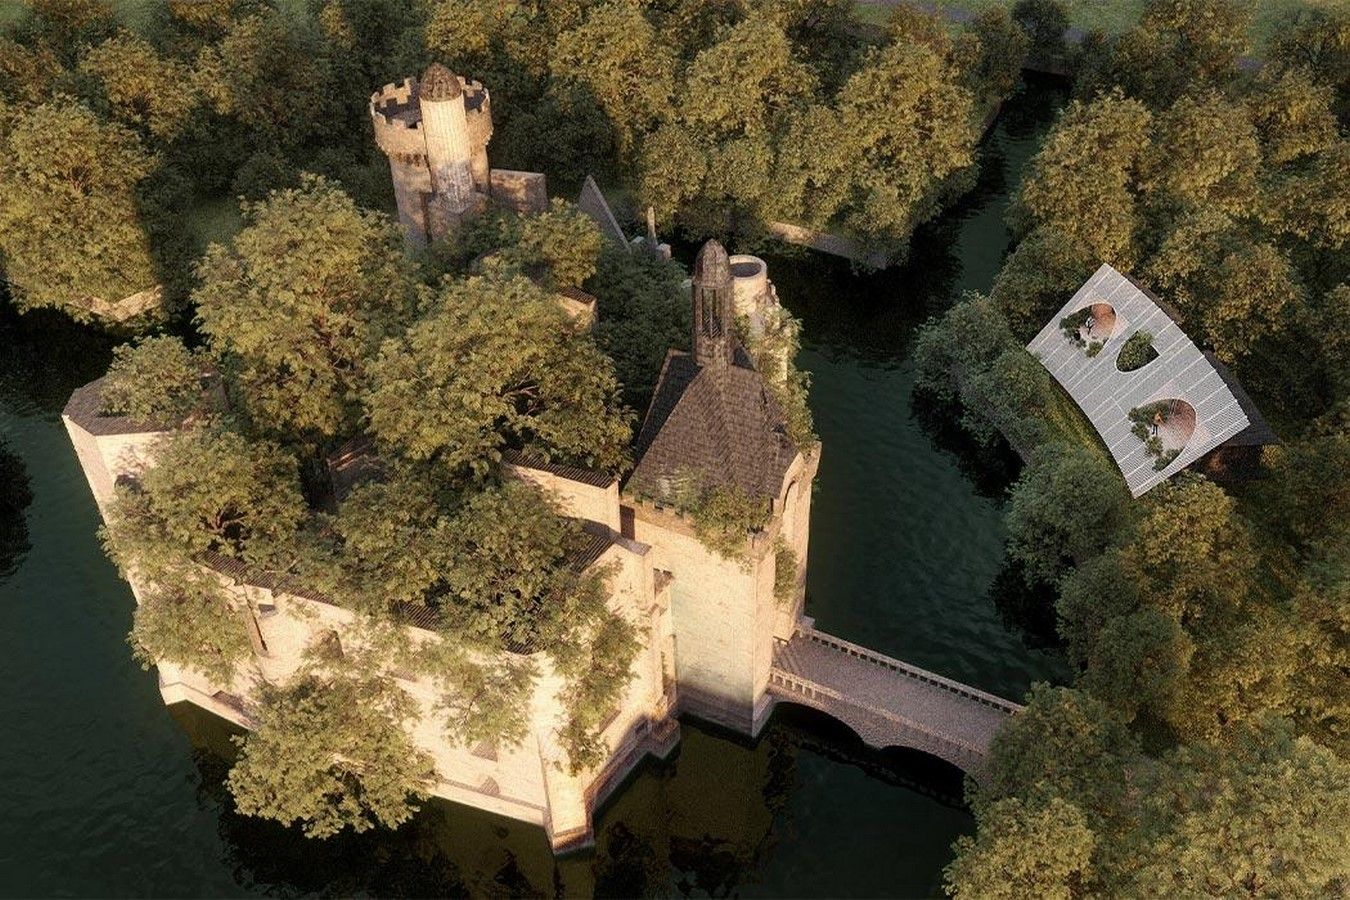 'château-scope' treehouse to frame views of a french castle proposed by LMTLS - Sheet1